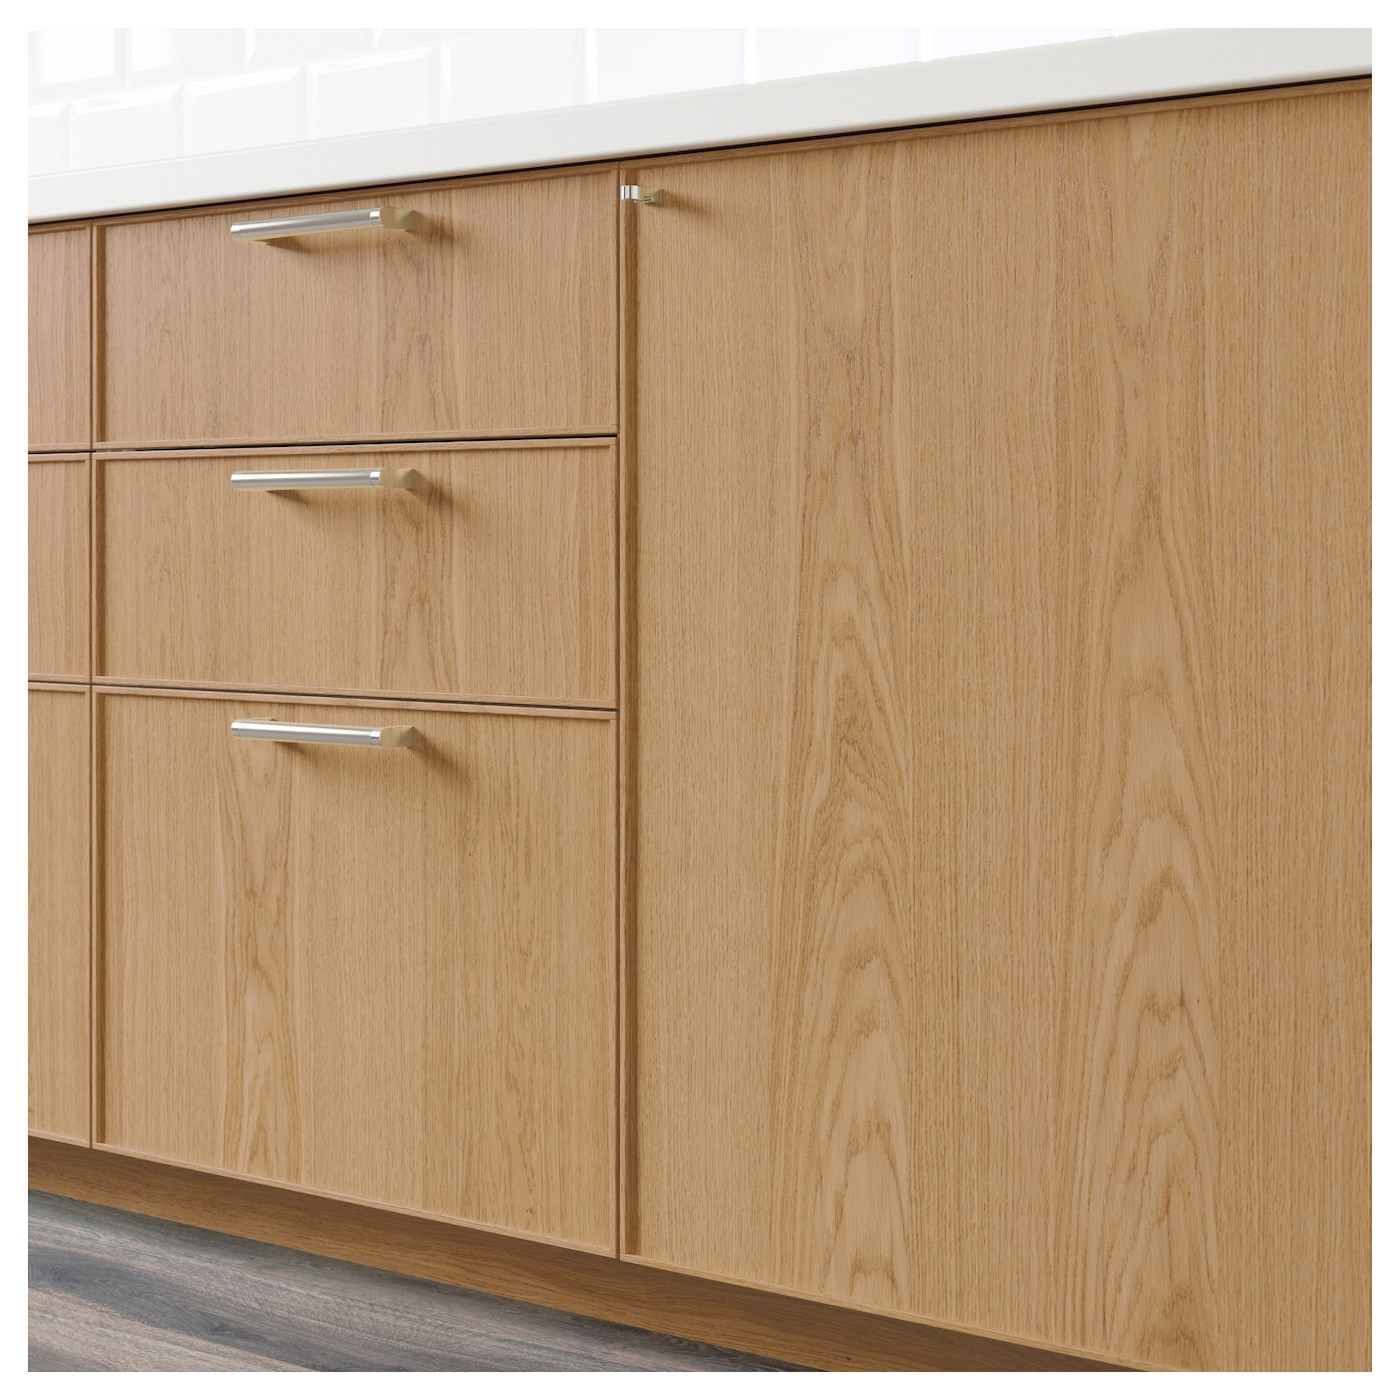 kitchen cabinets door fronts ekestad drawer front oak 40 x 20 cm ikea 20307